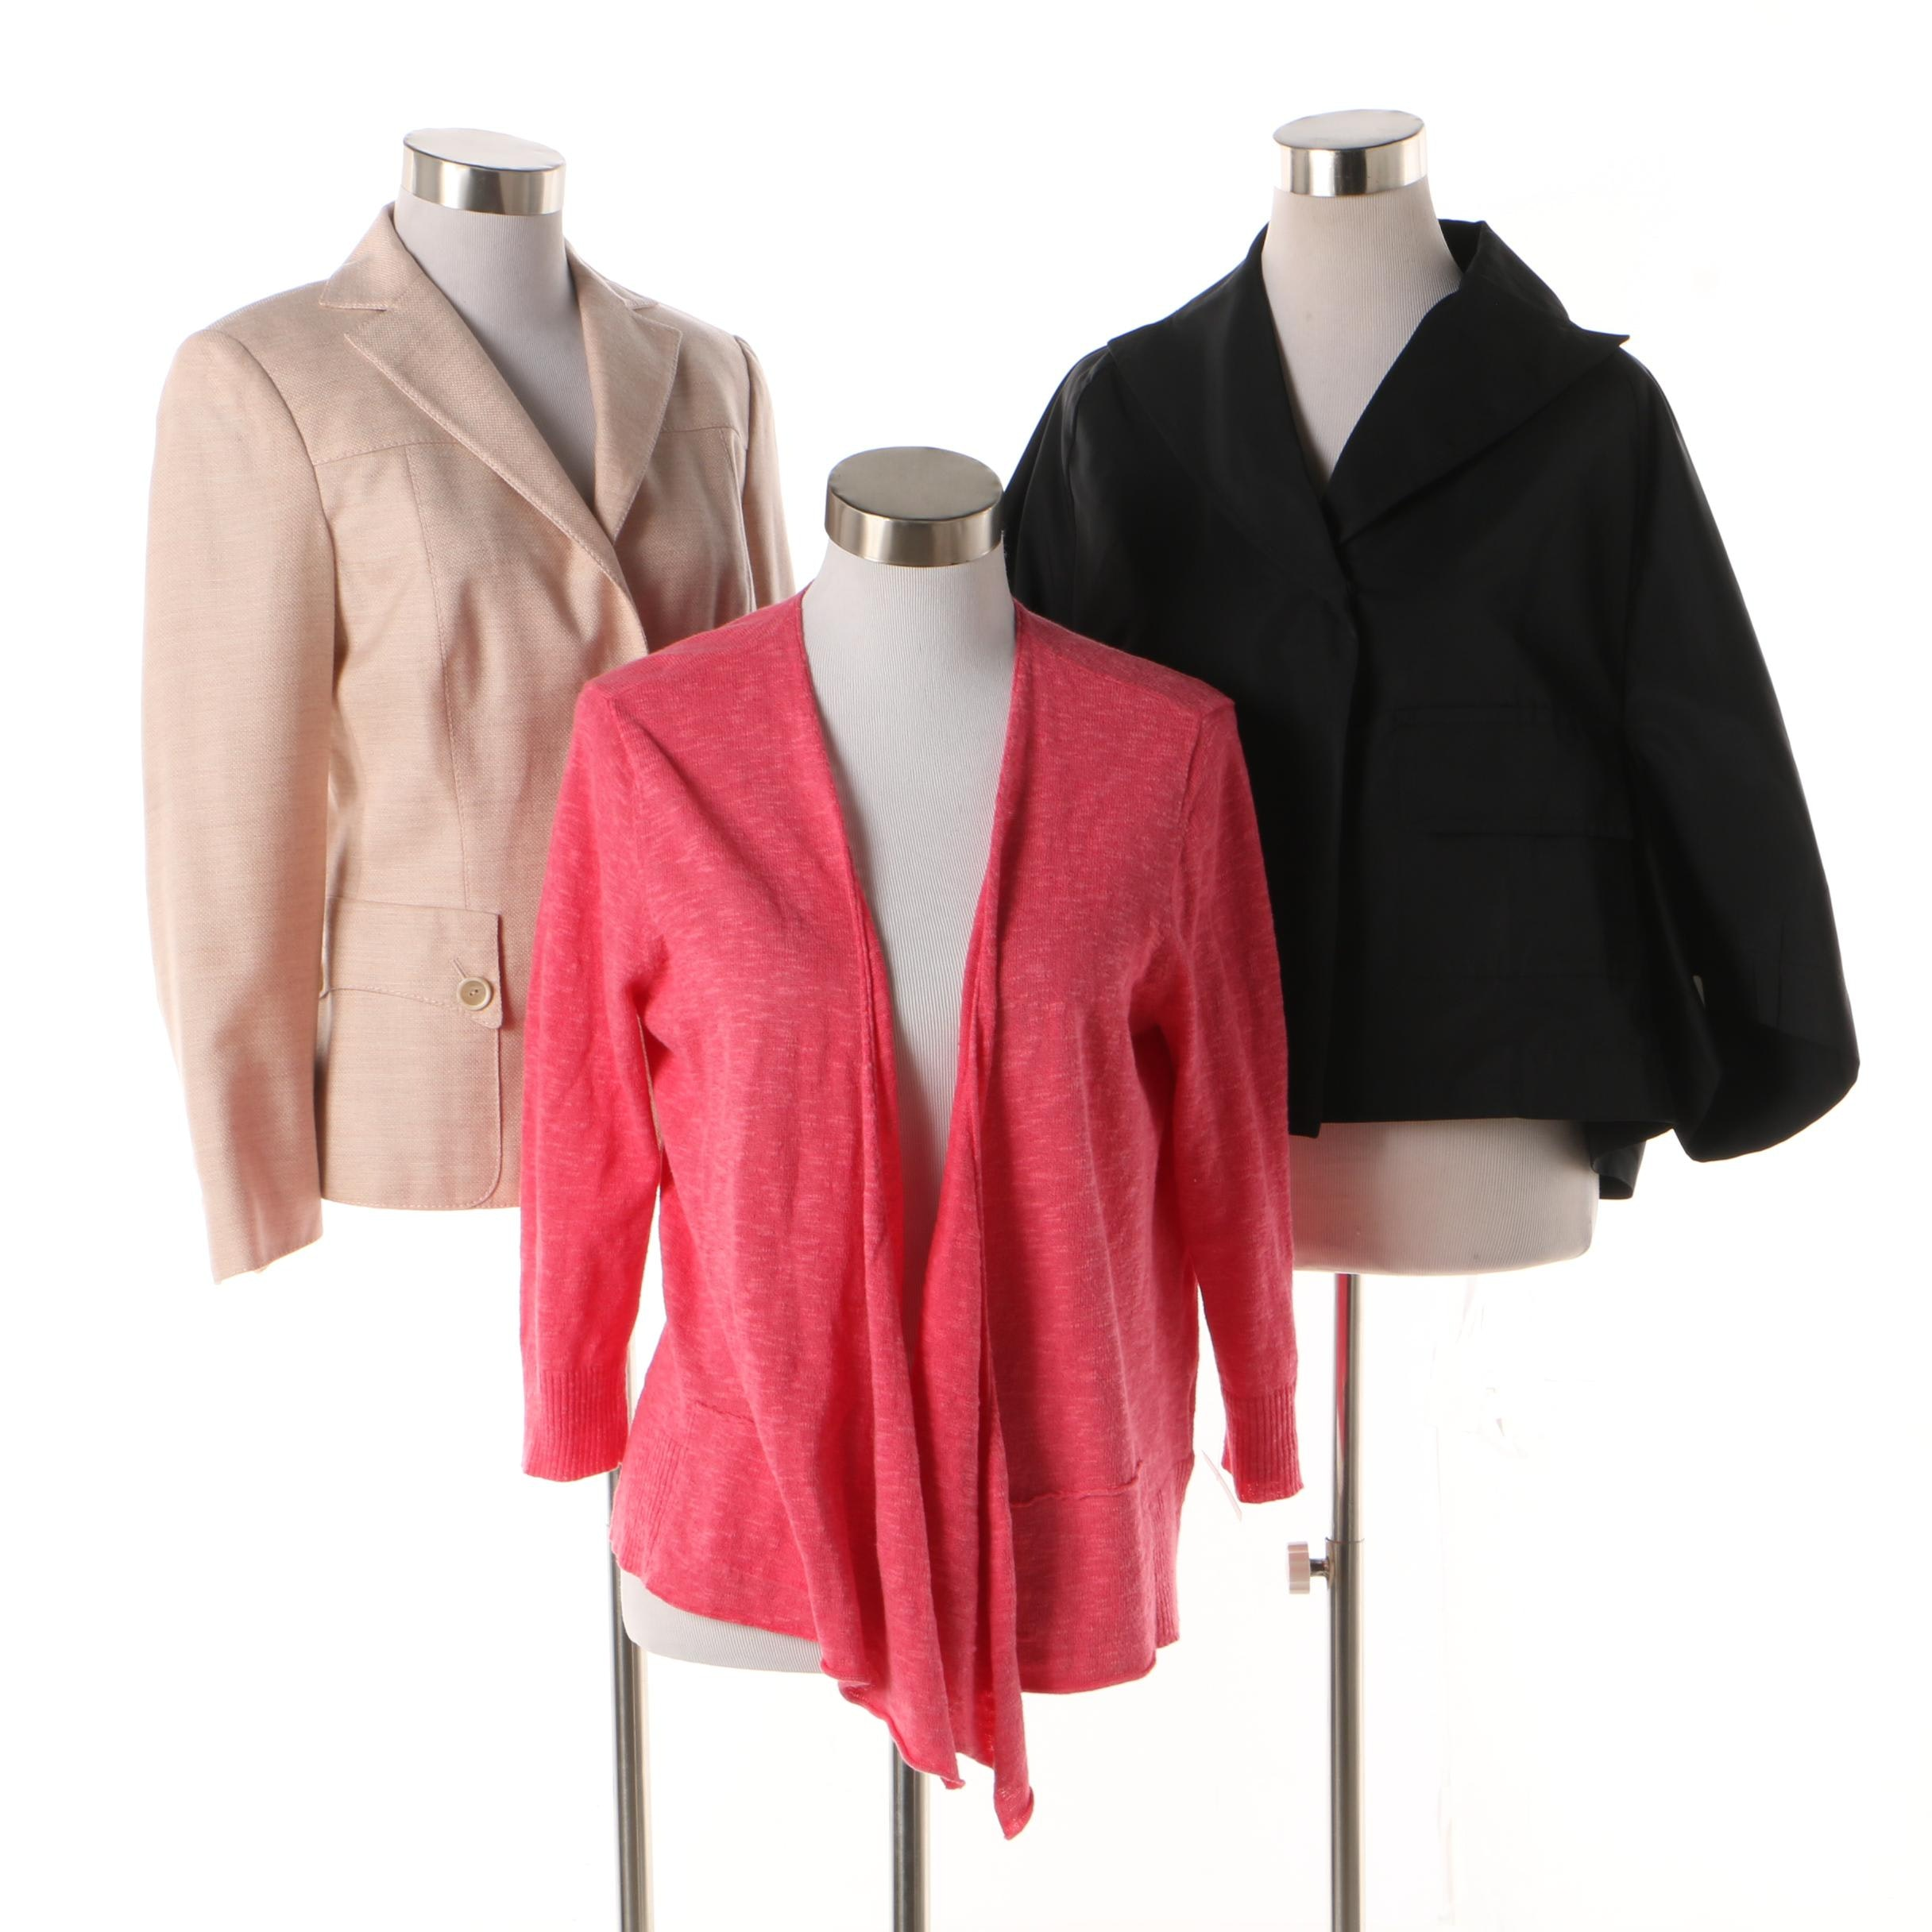 Women's Akris and Piazza Sempione Jackets with Eileen Fisher Cardigan